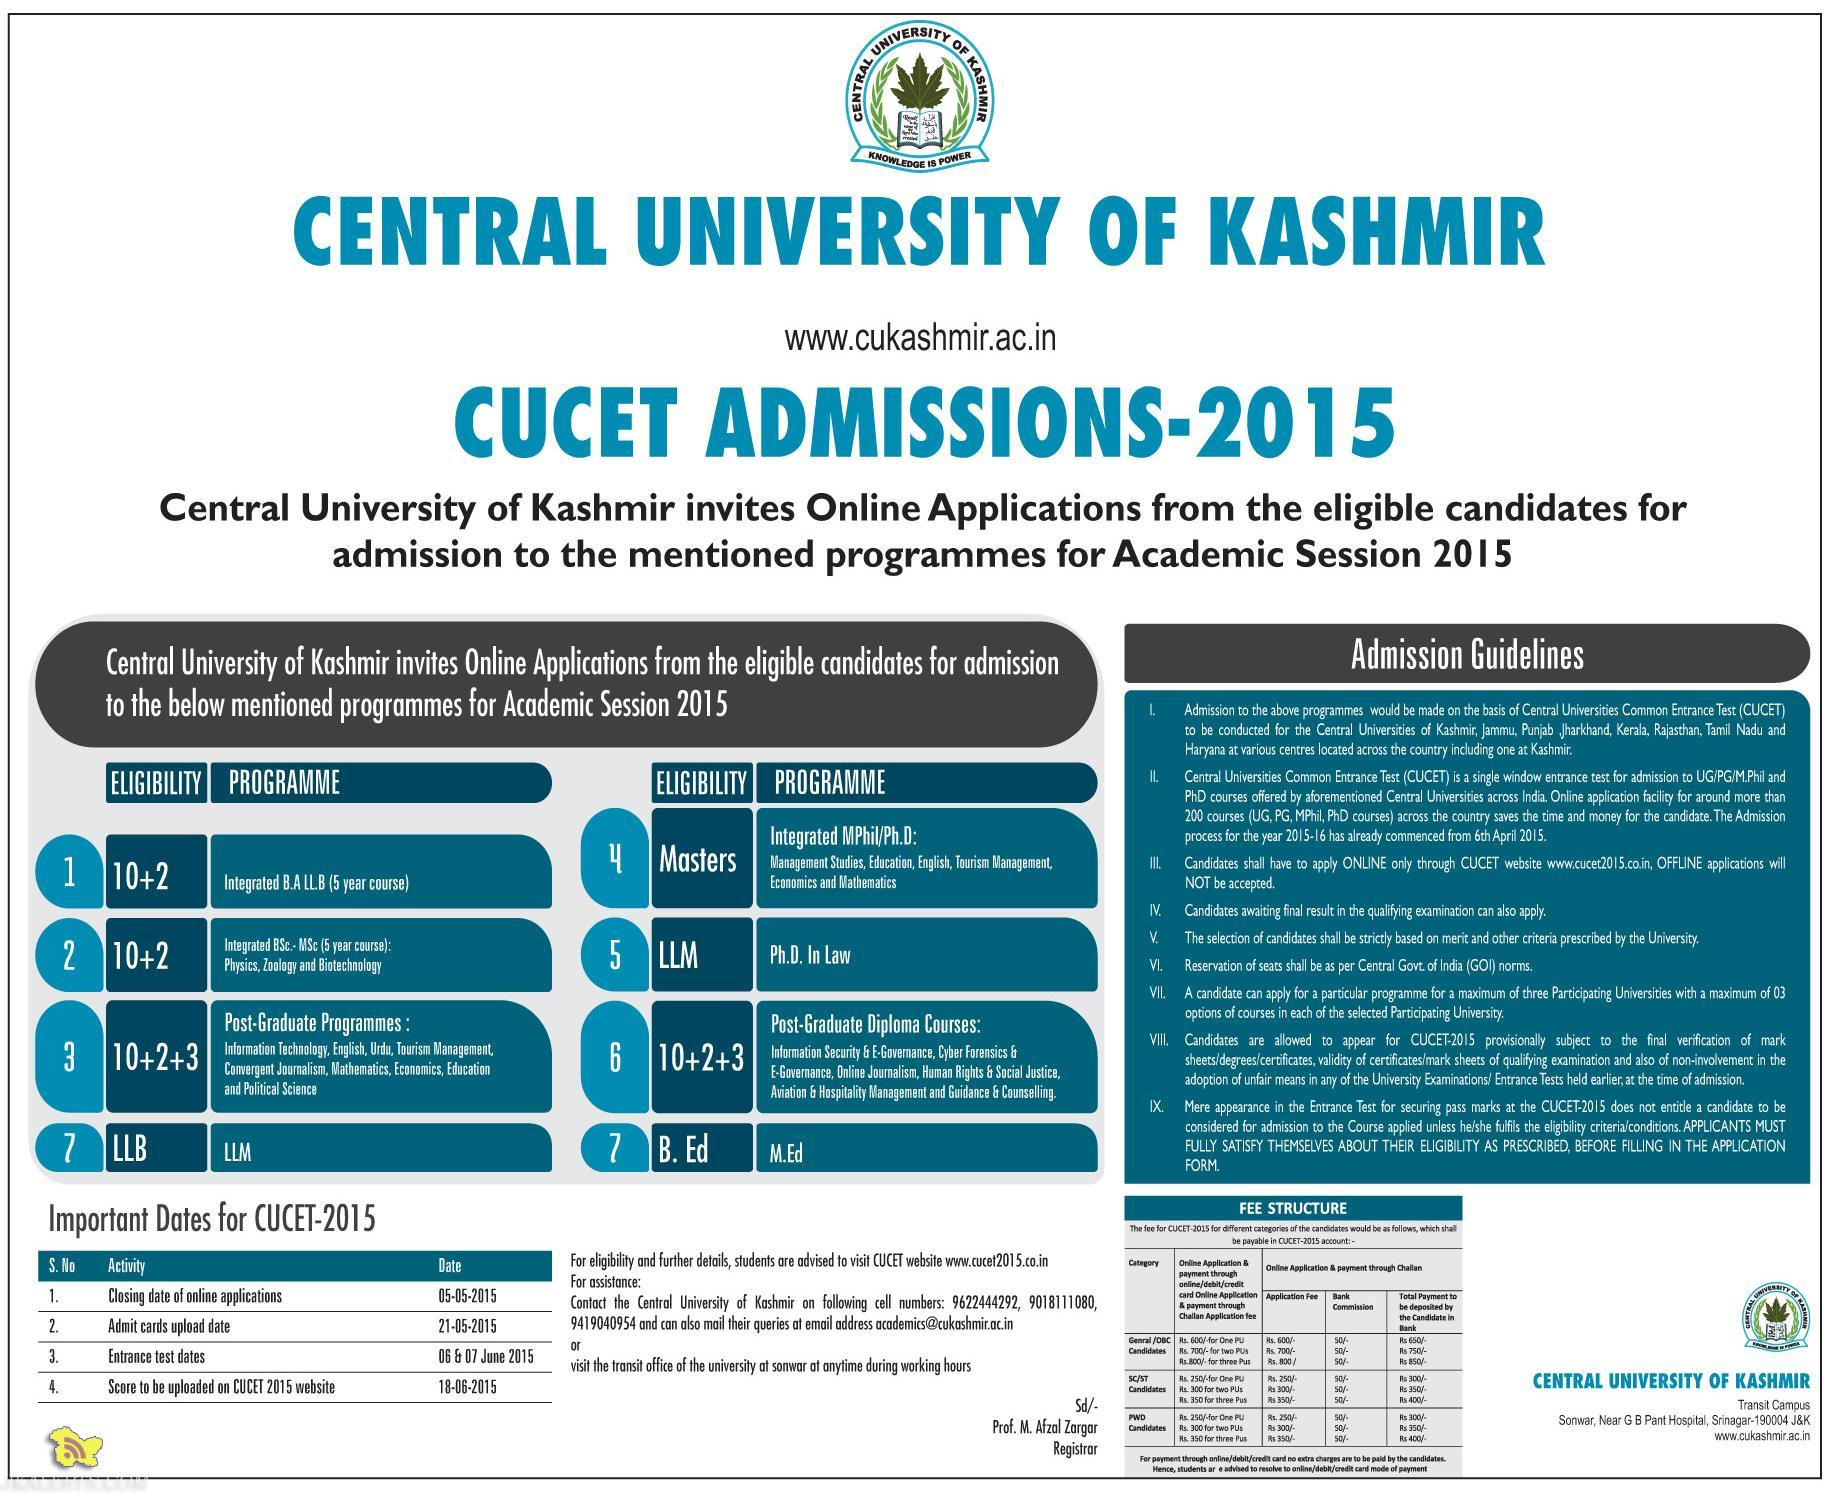 CENTRAL UNIVERSITY OF KASHMIR CUCET ADMISSIONS-2015